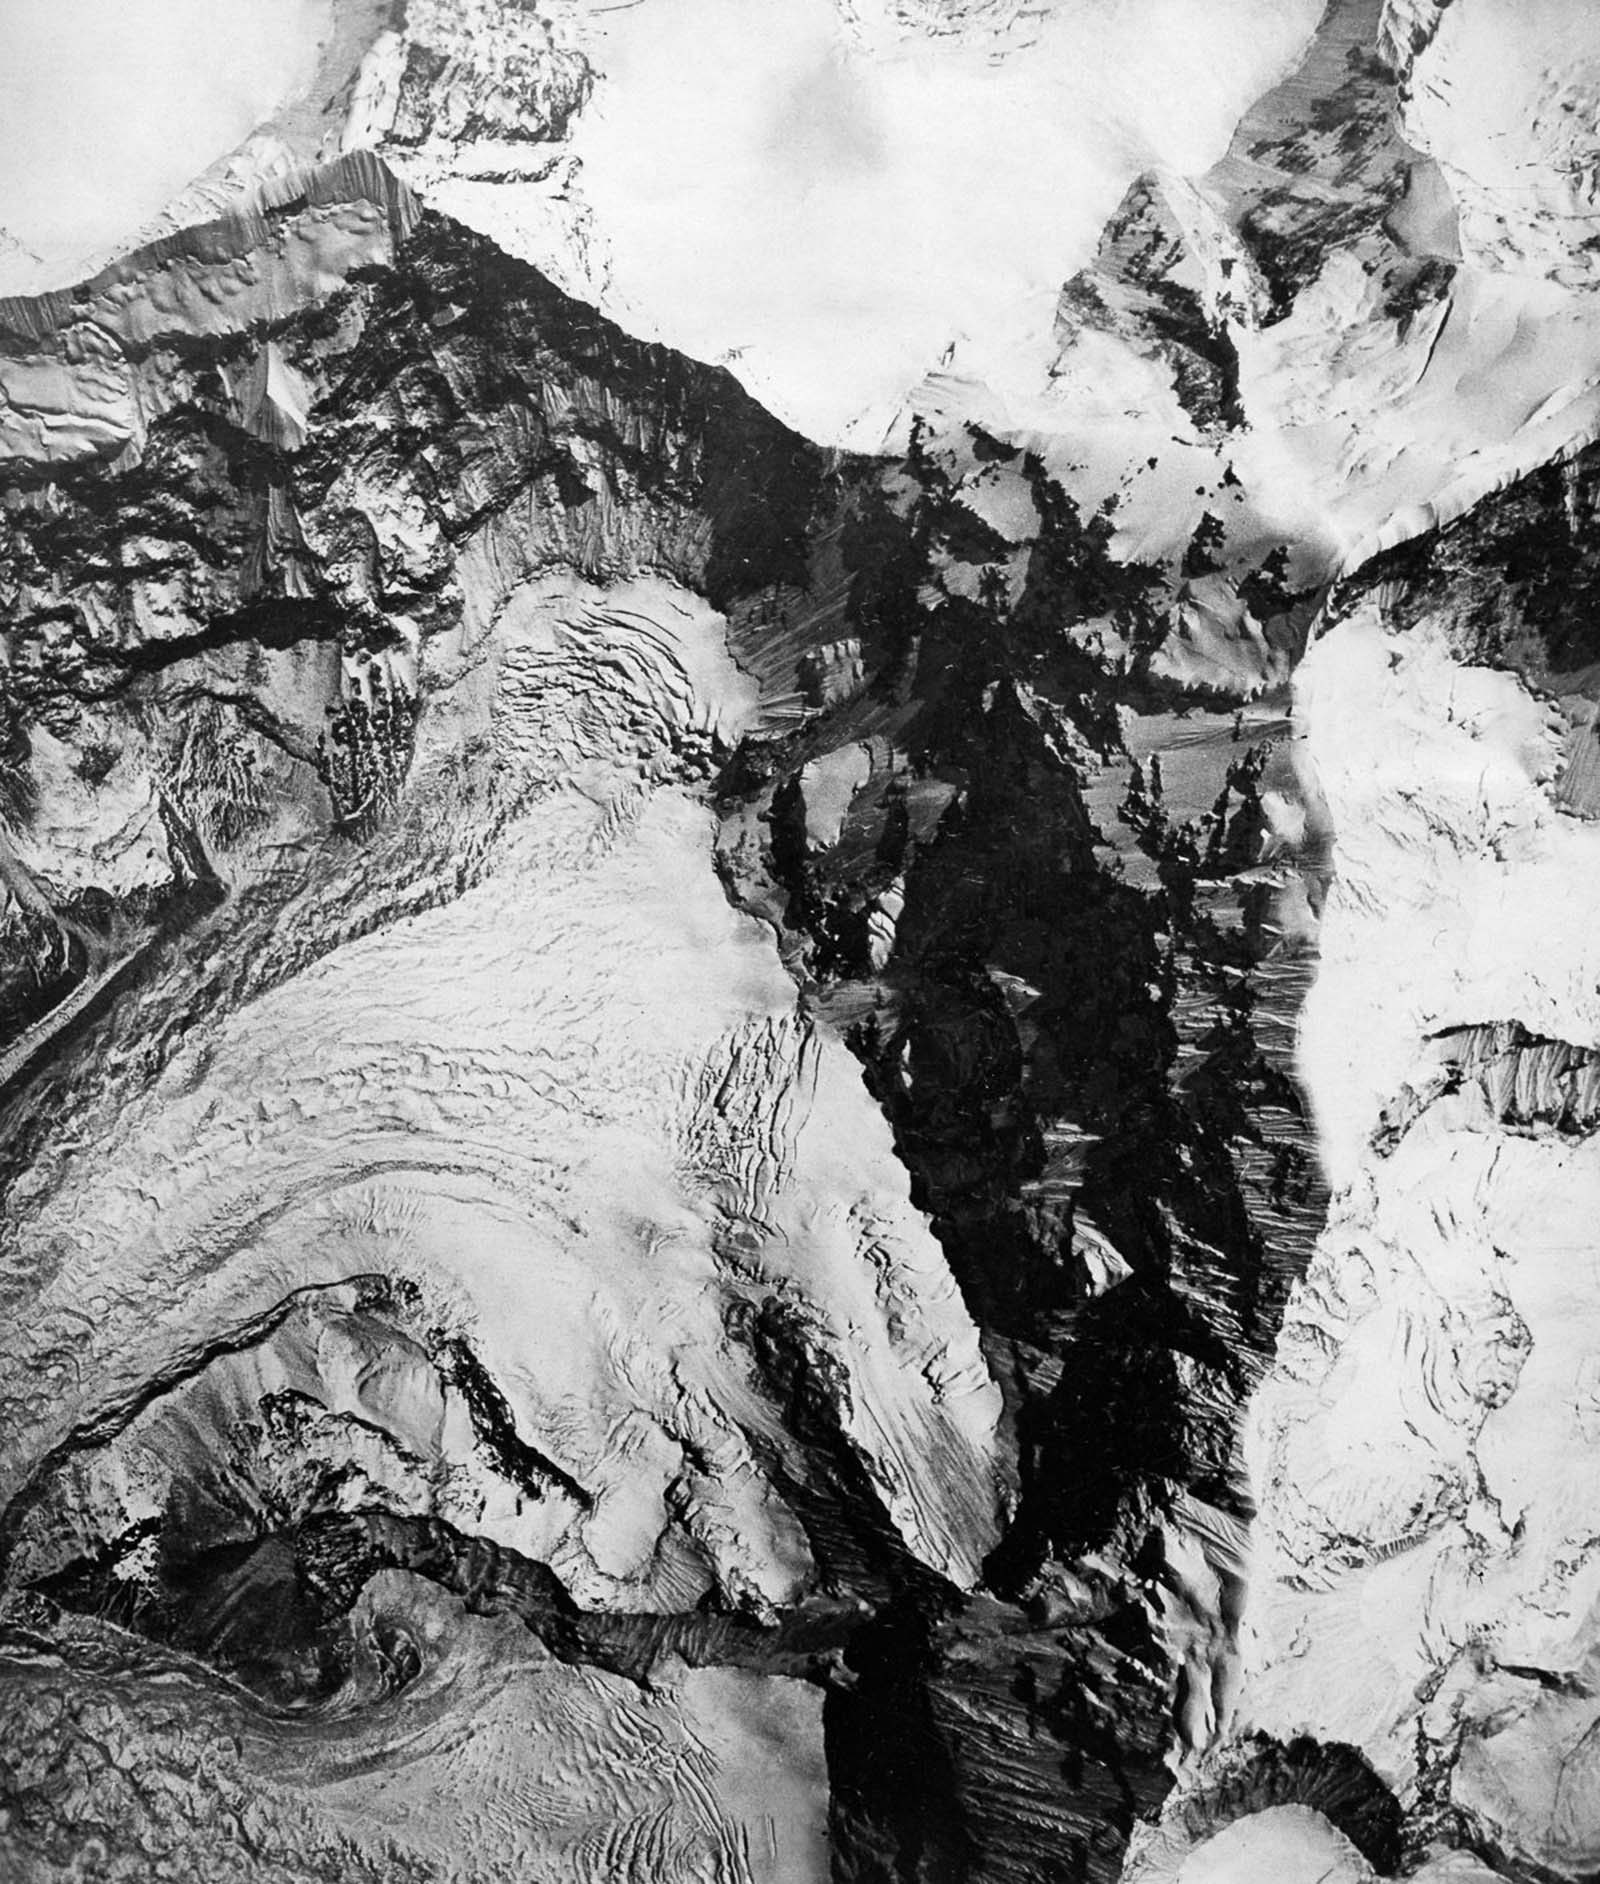 The head of a glacier immediately under the Everest massif.